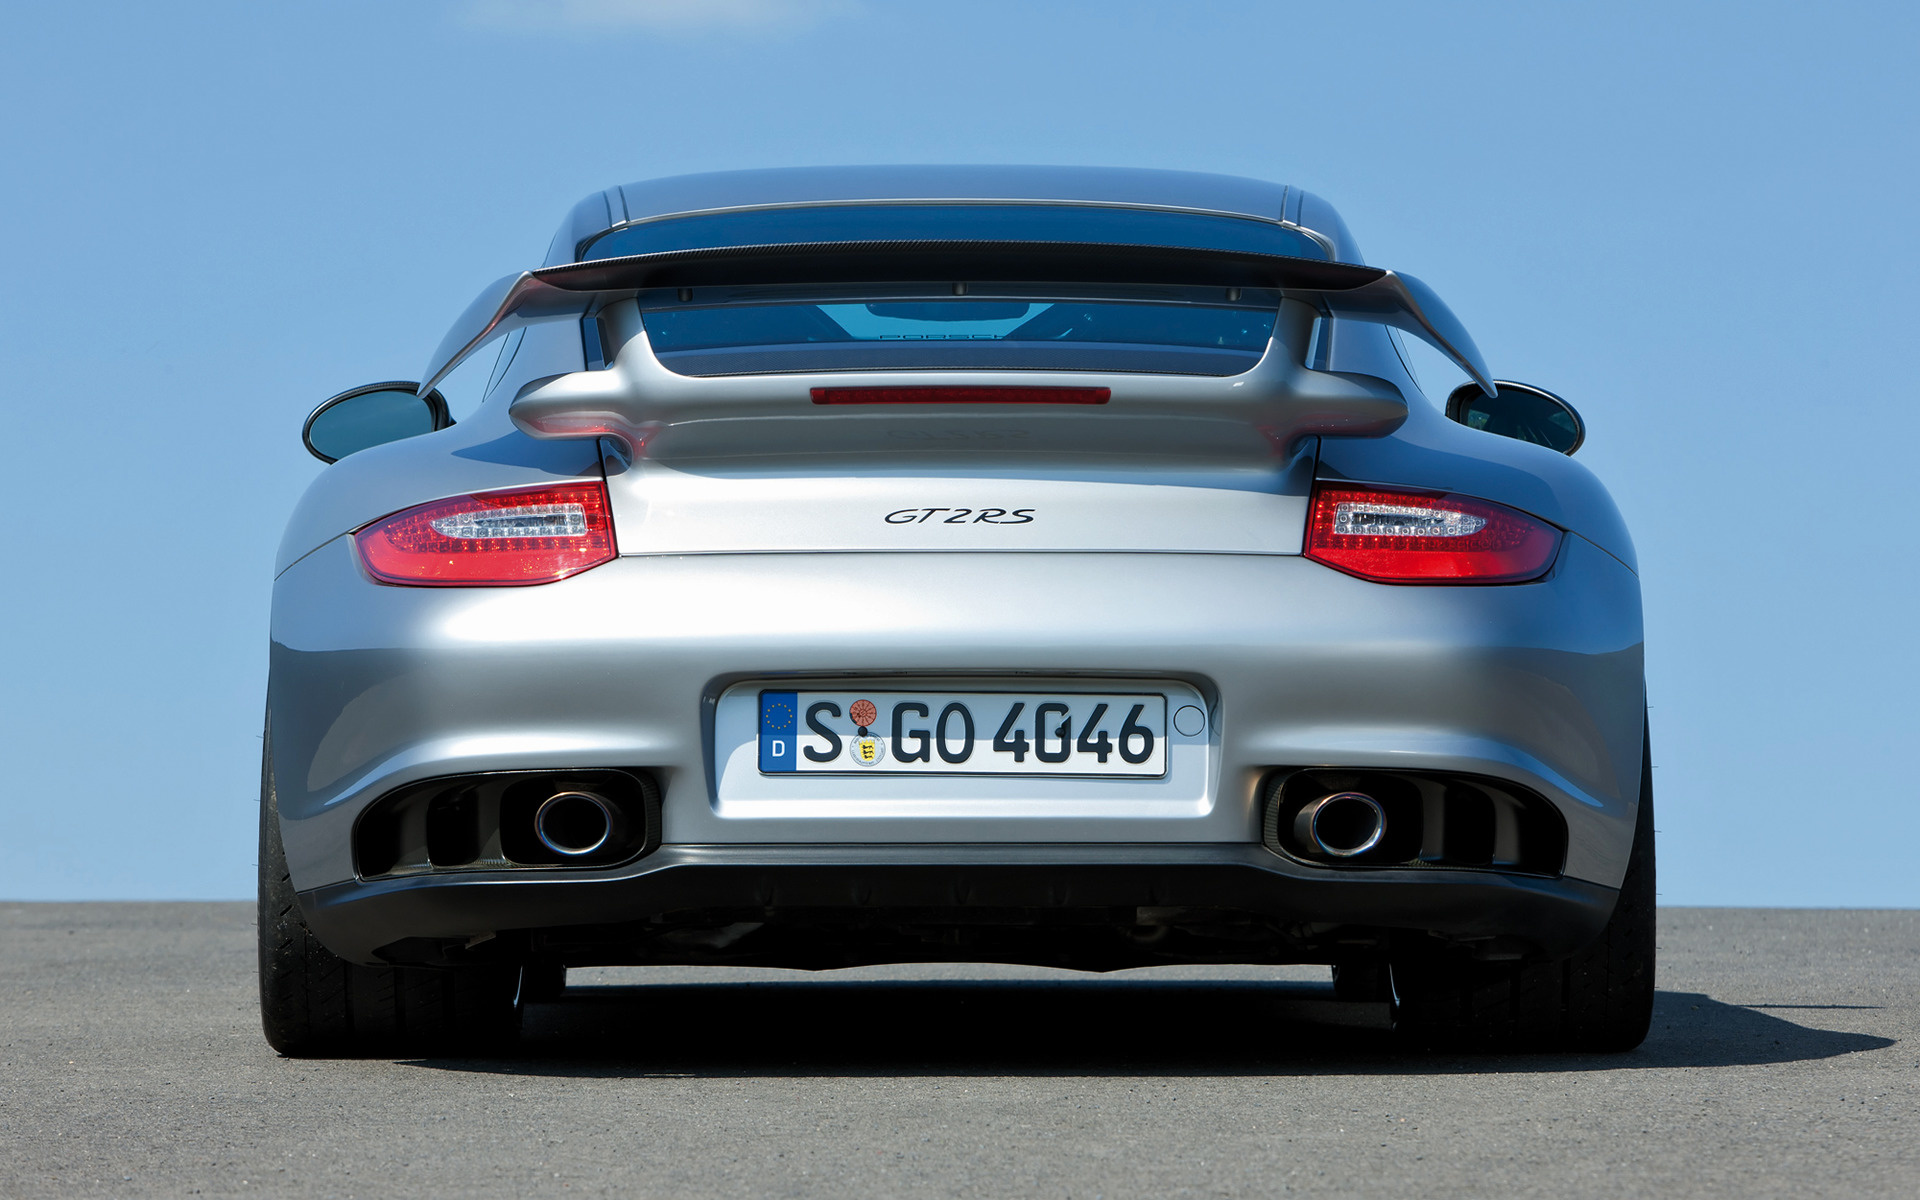 porsche-911-gt2-rs-car-wallpaper-49146 Cozy Porsche 911 Gt2 Rs Wallpaper Cars Trend